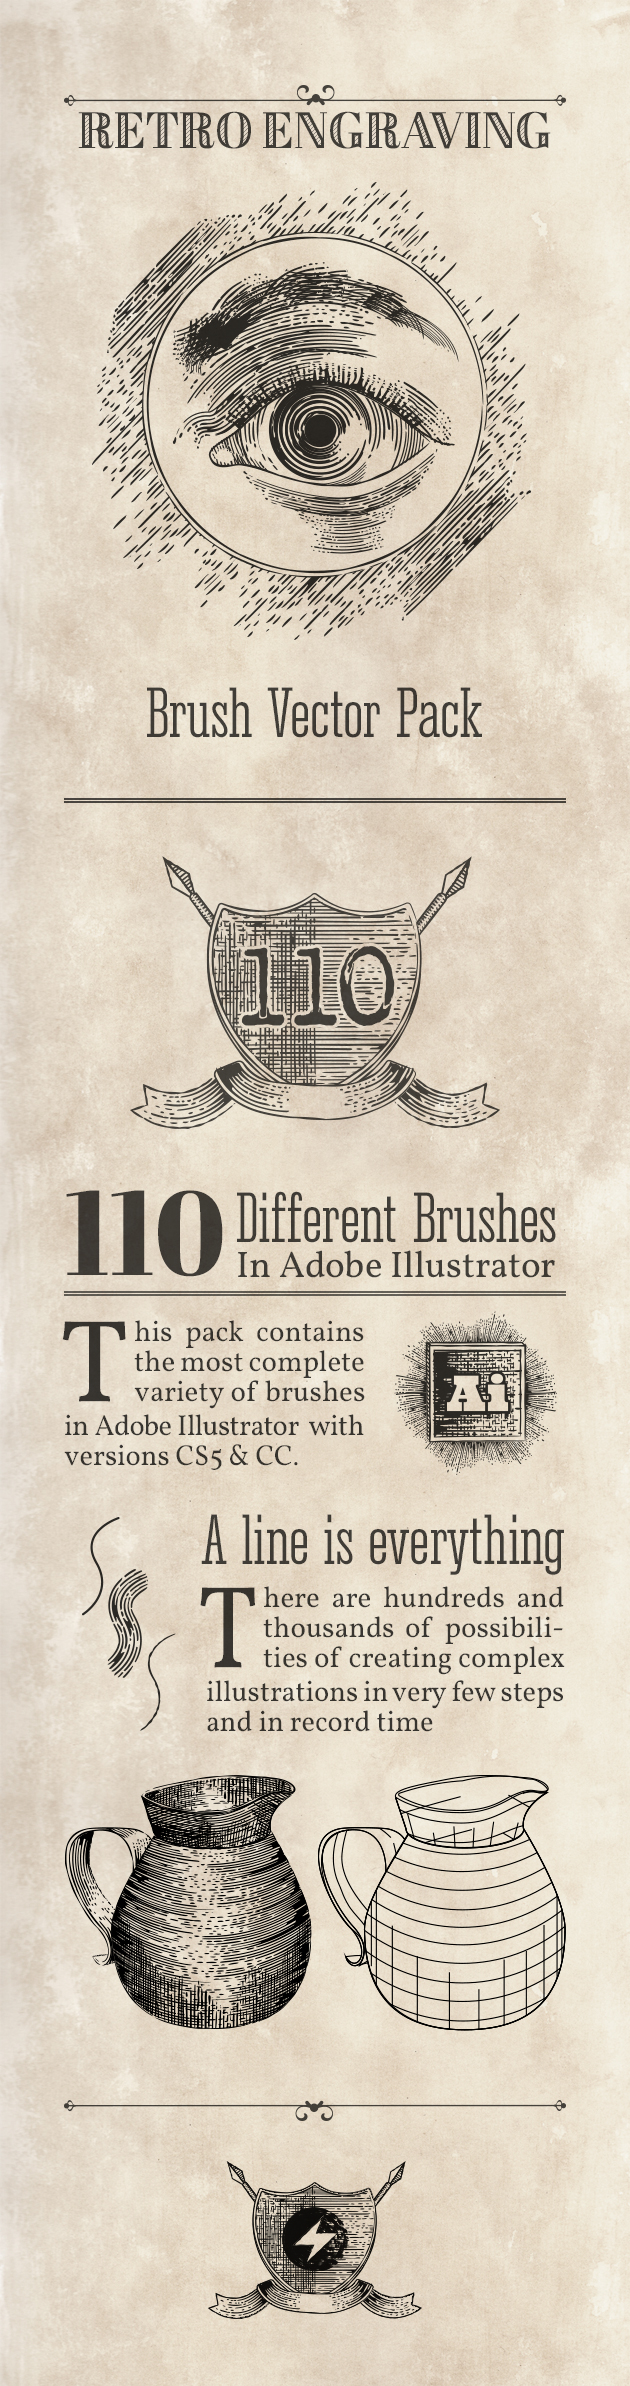 vintage_brushes_engraving_intro